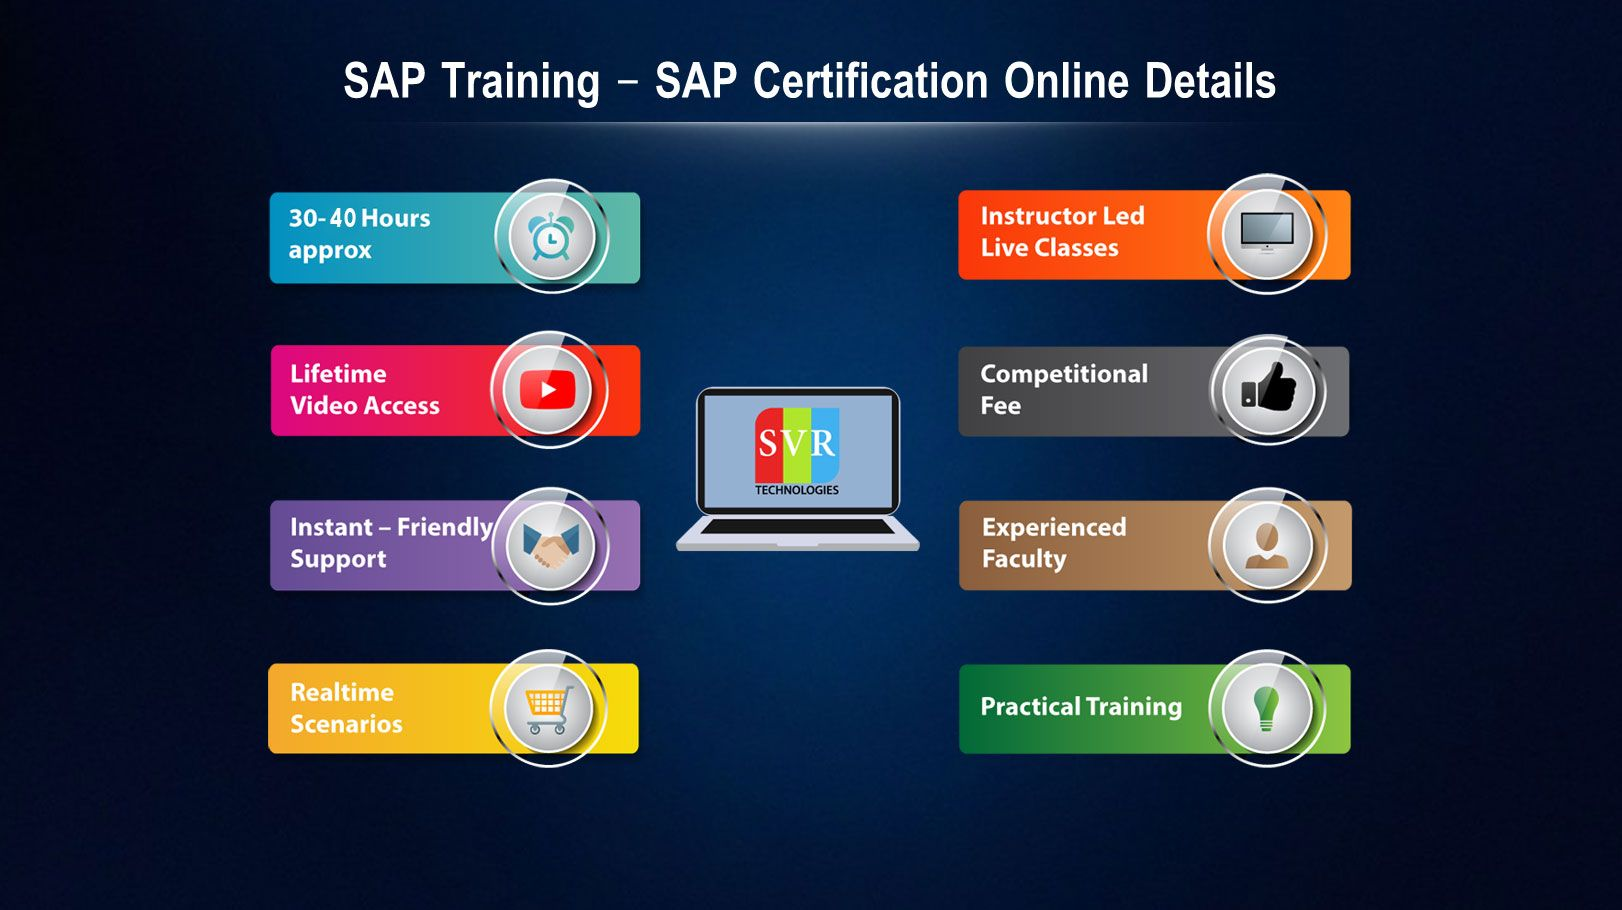 SAP Training Online Online training, Learning courses